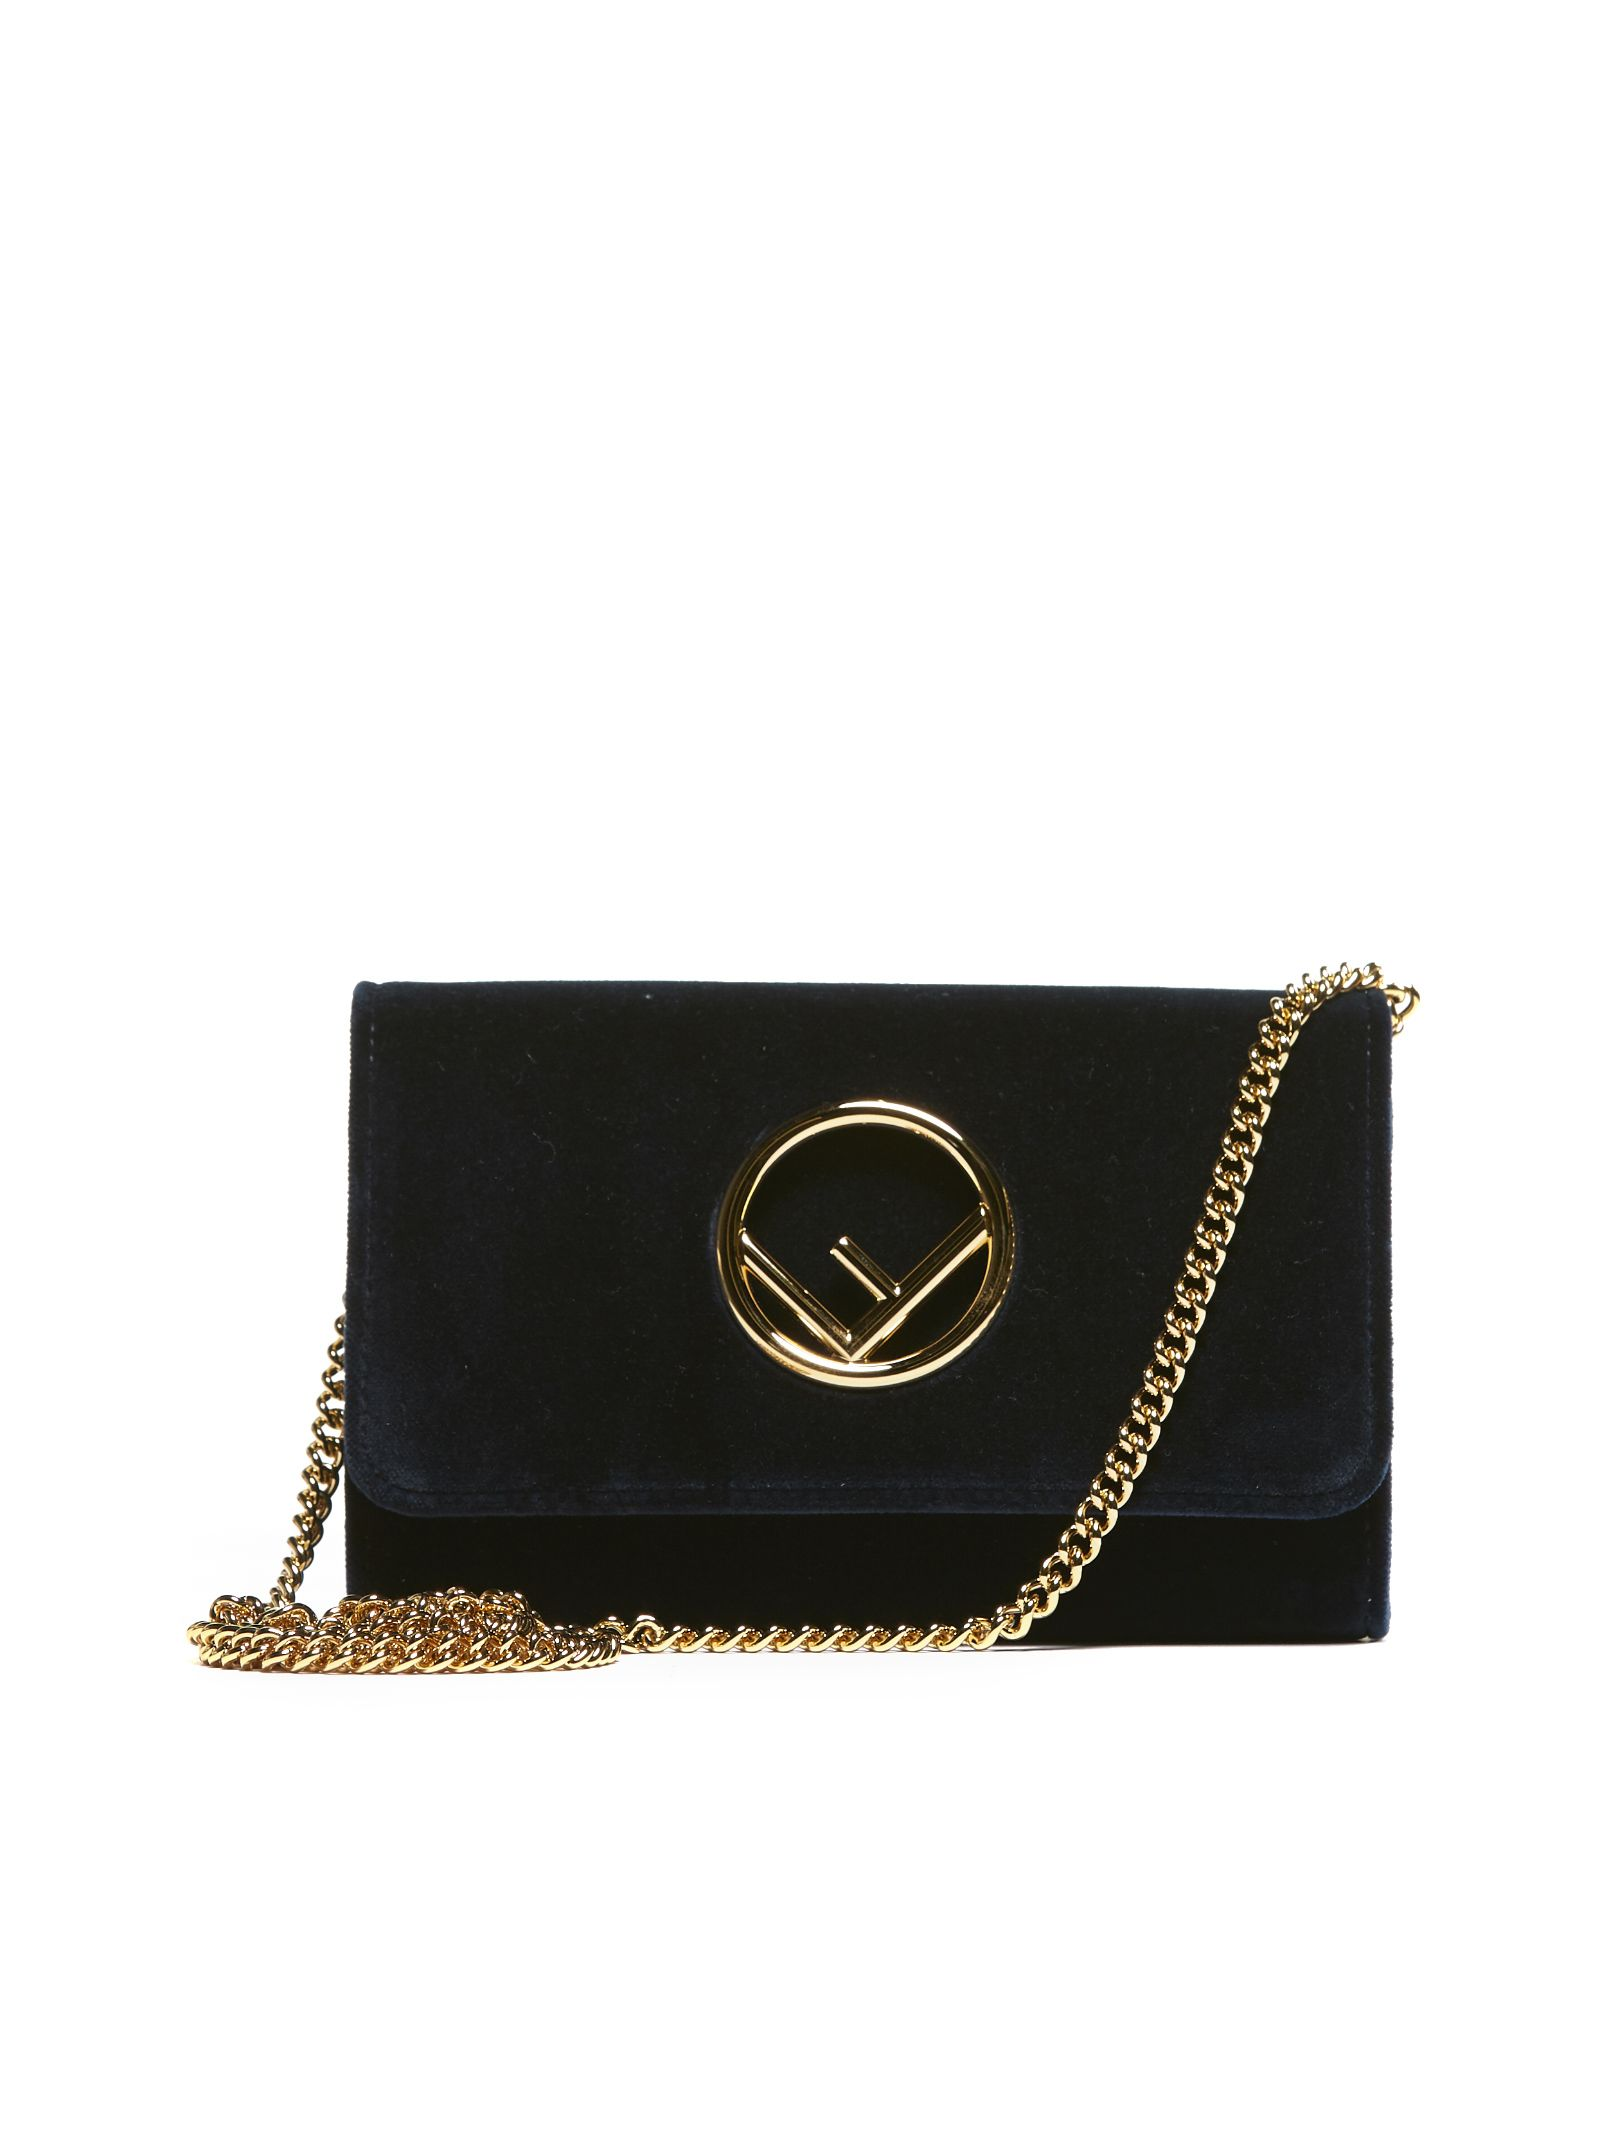 FENDI MINI CHAIN SHOULDER BAG